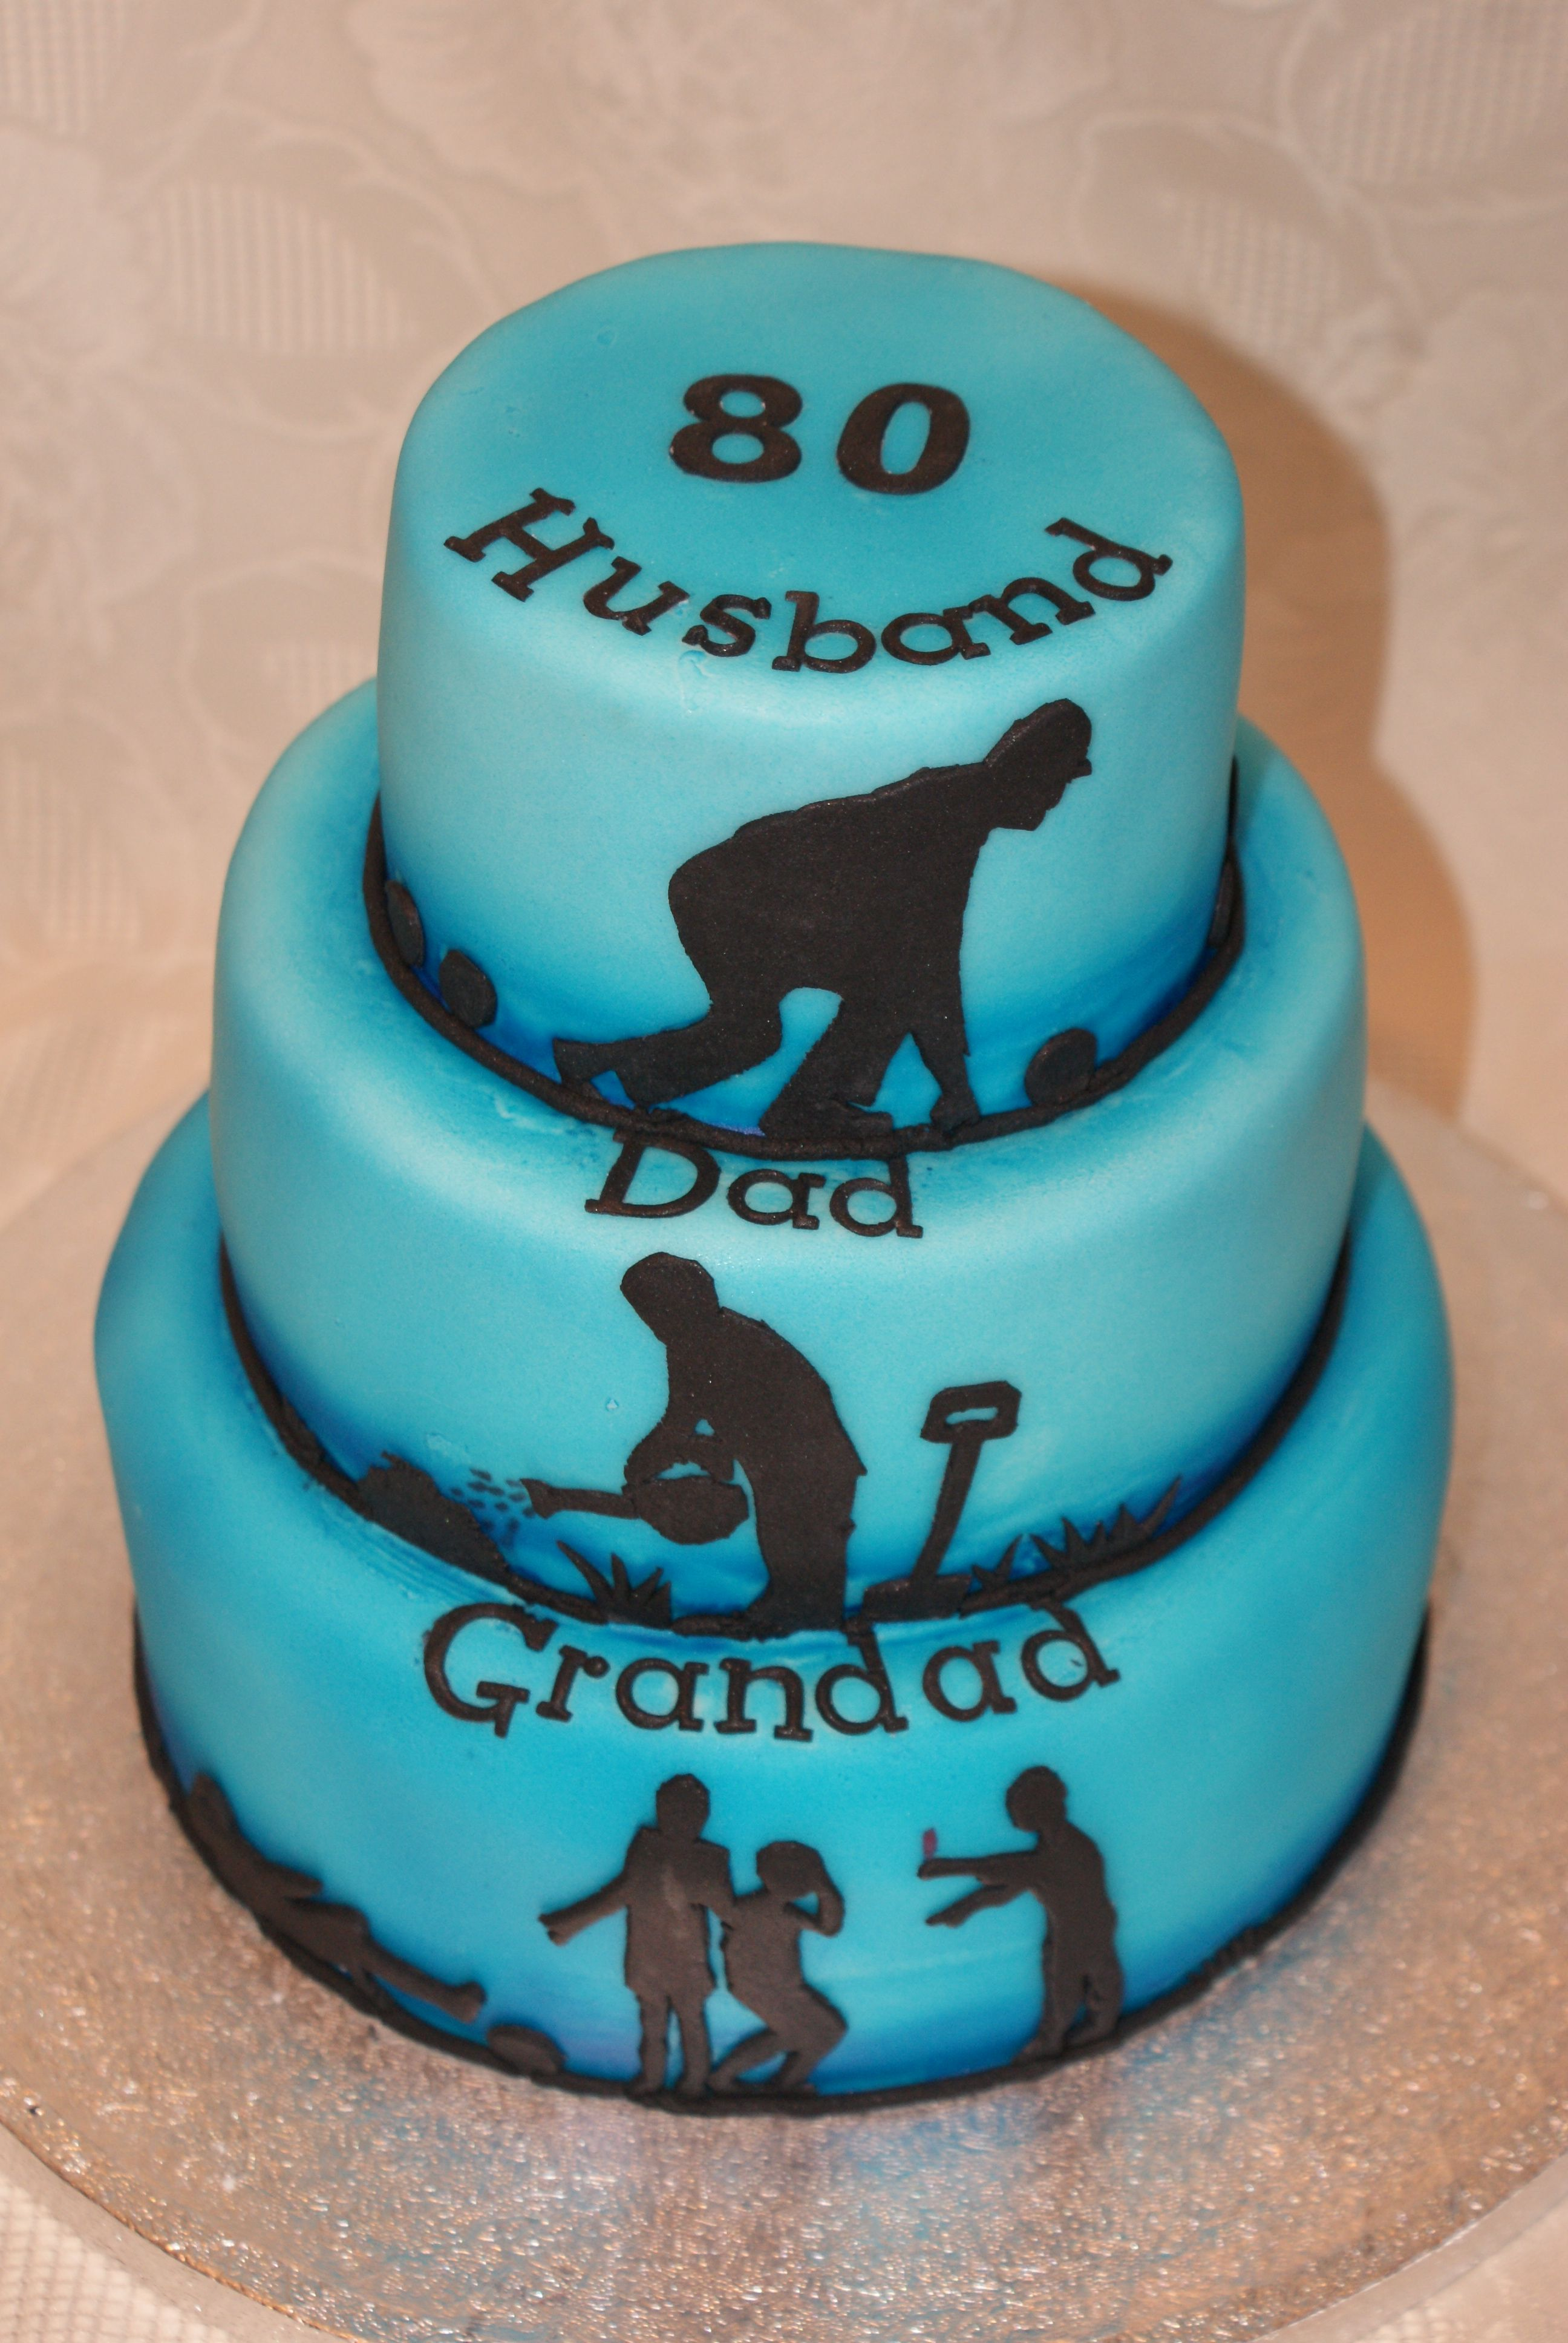 80th Birthday Cake Husband Dad Grandad Tiered With Lawn Bowls